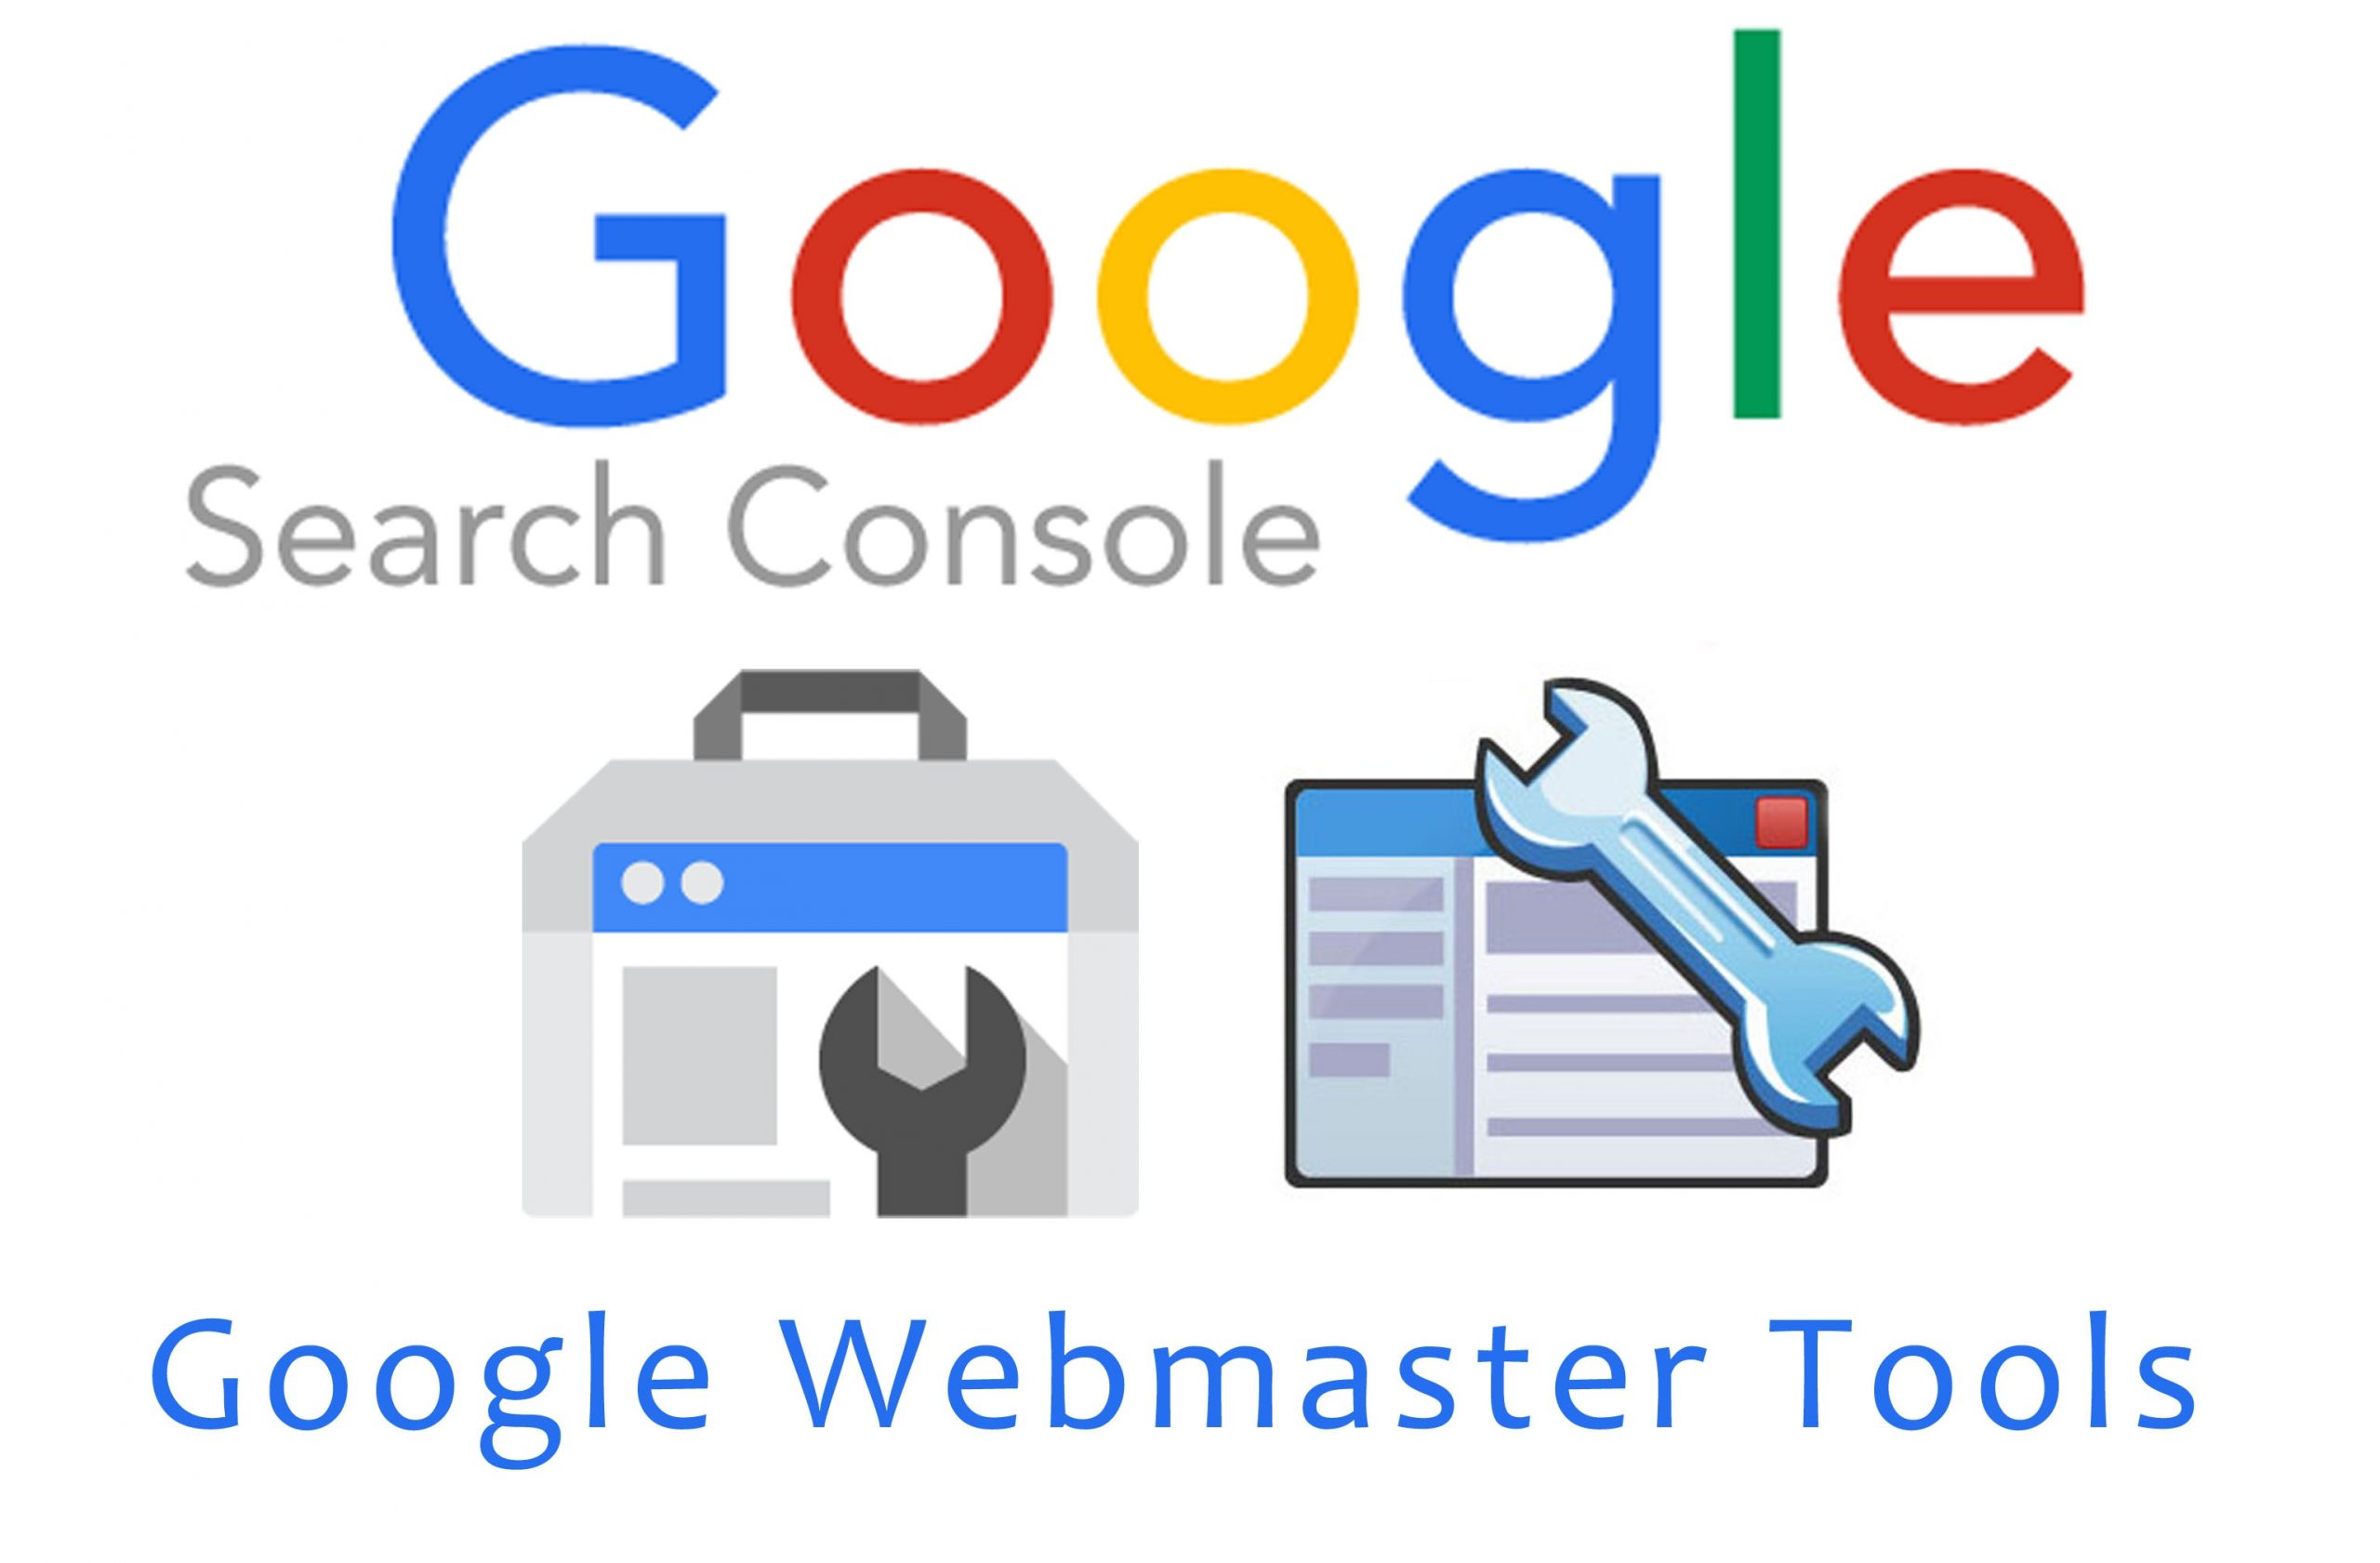 Google Webmasters Search-Console